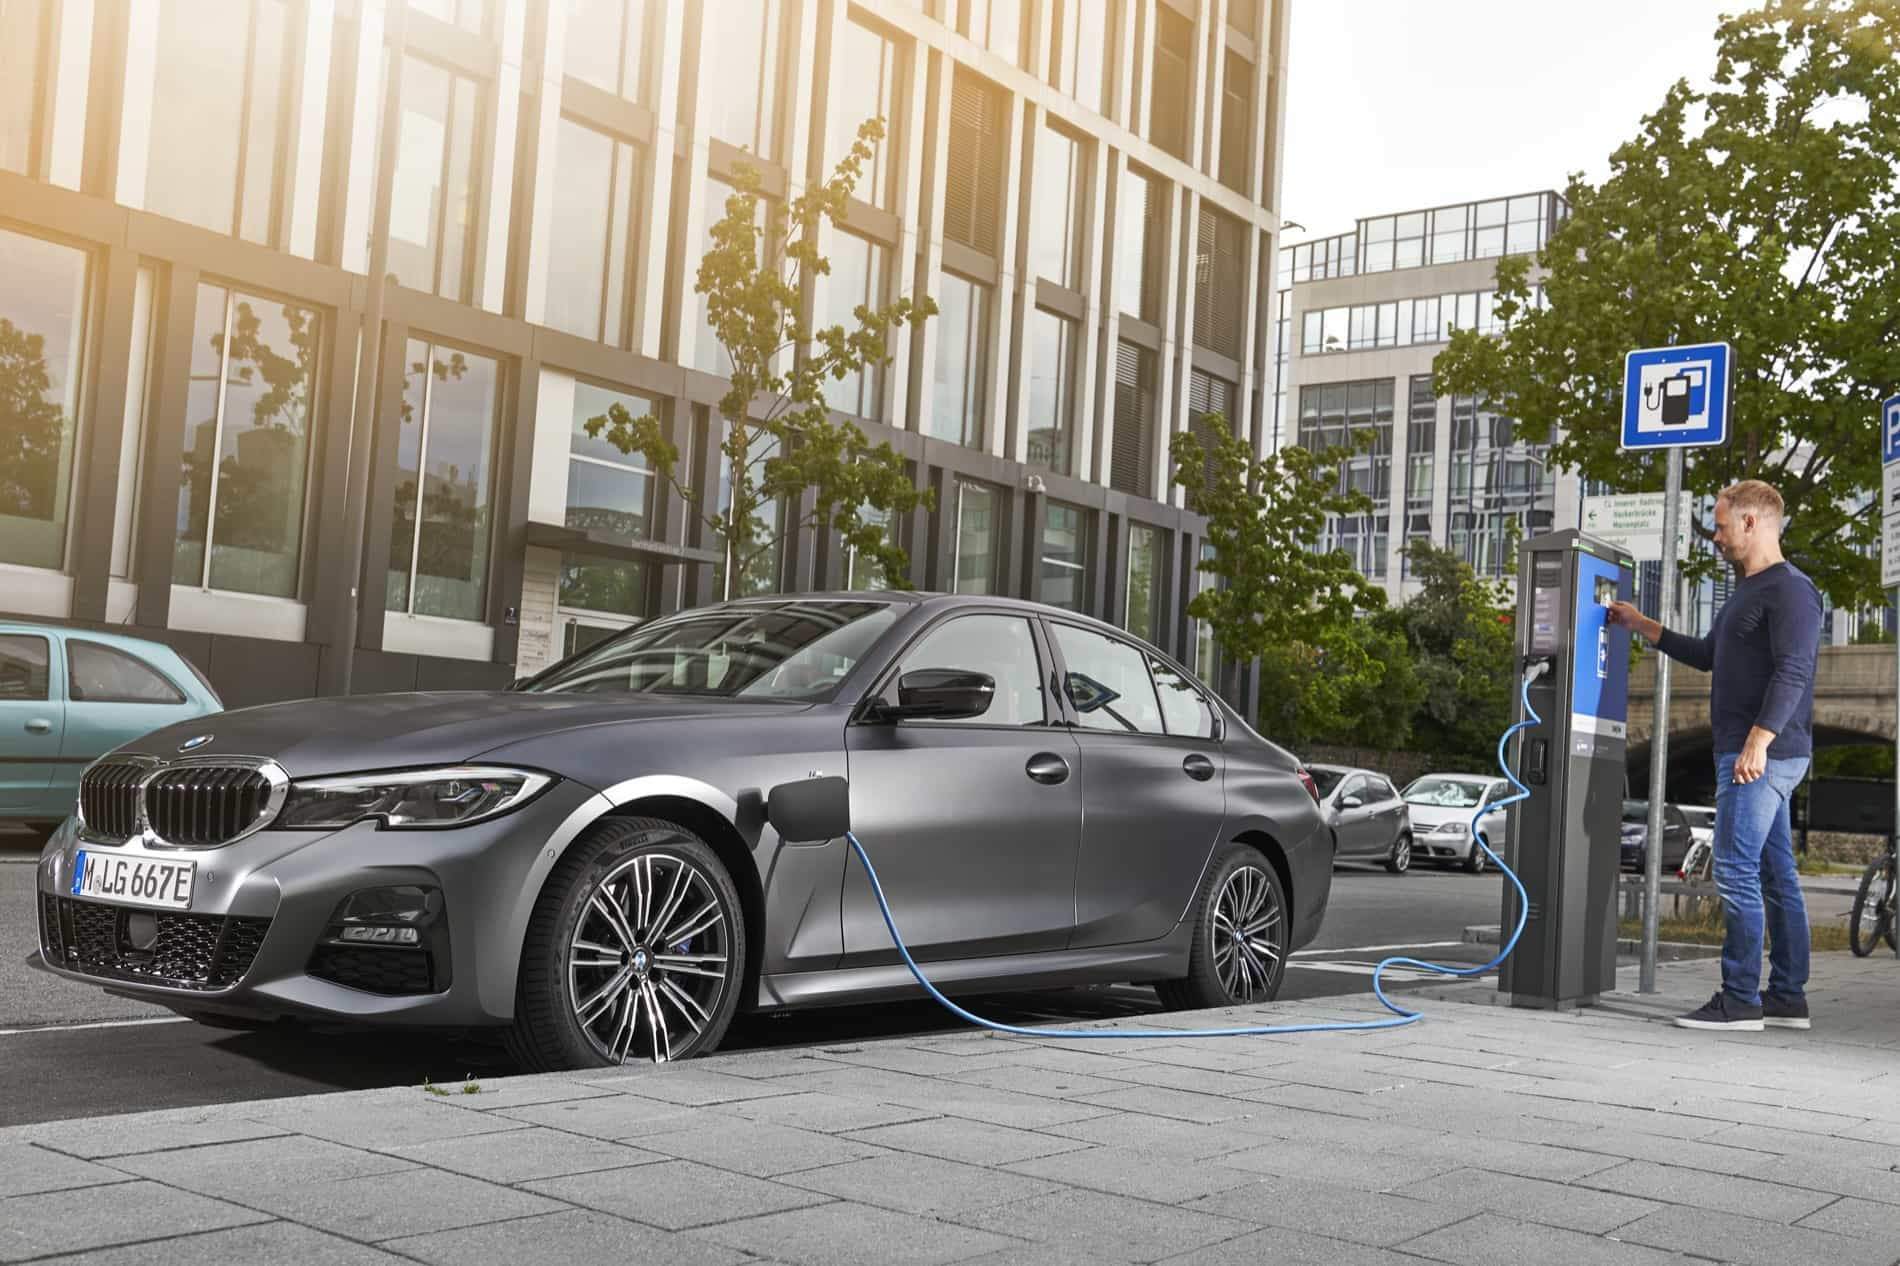 BMW_3_Series_Plug-in_Hybrid-064